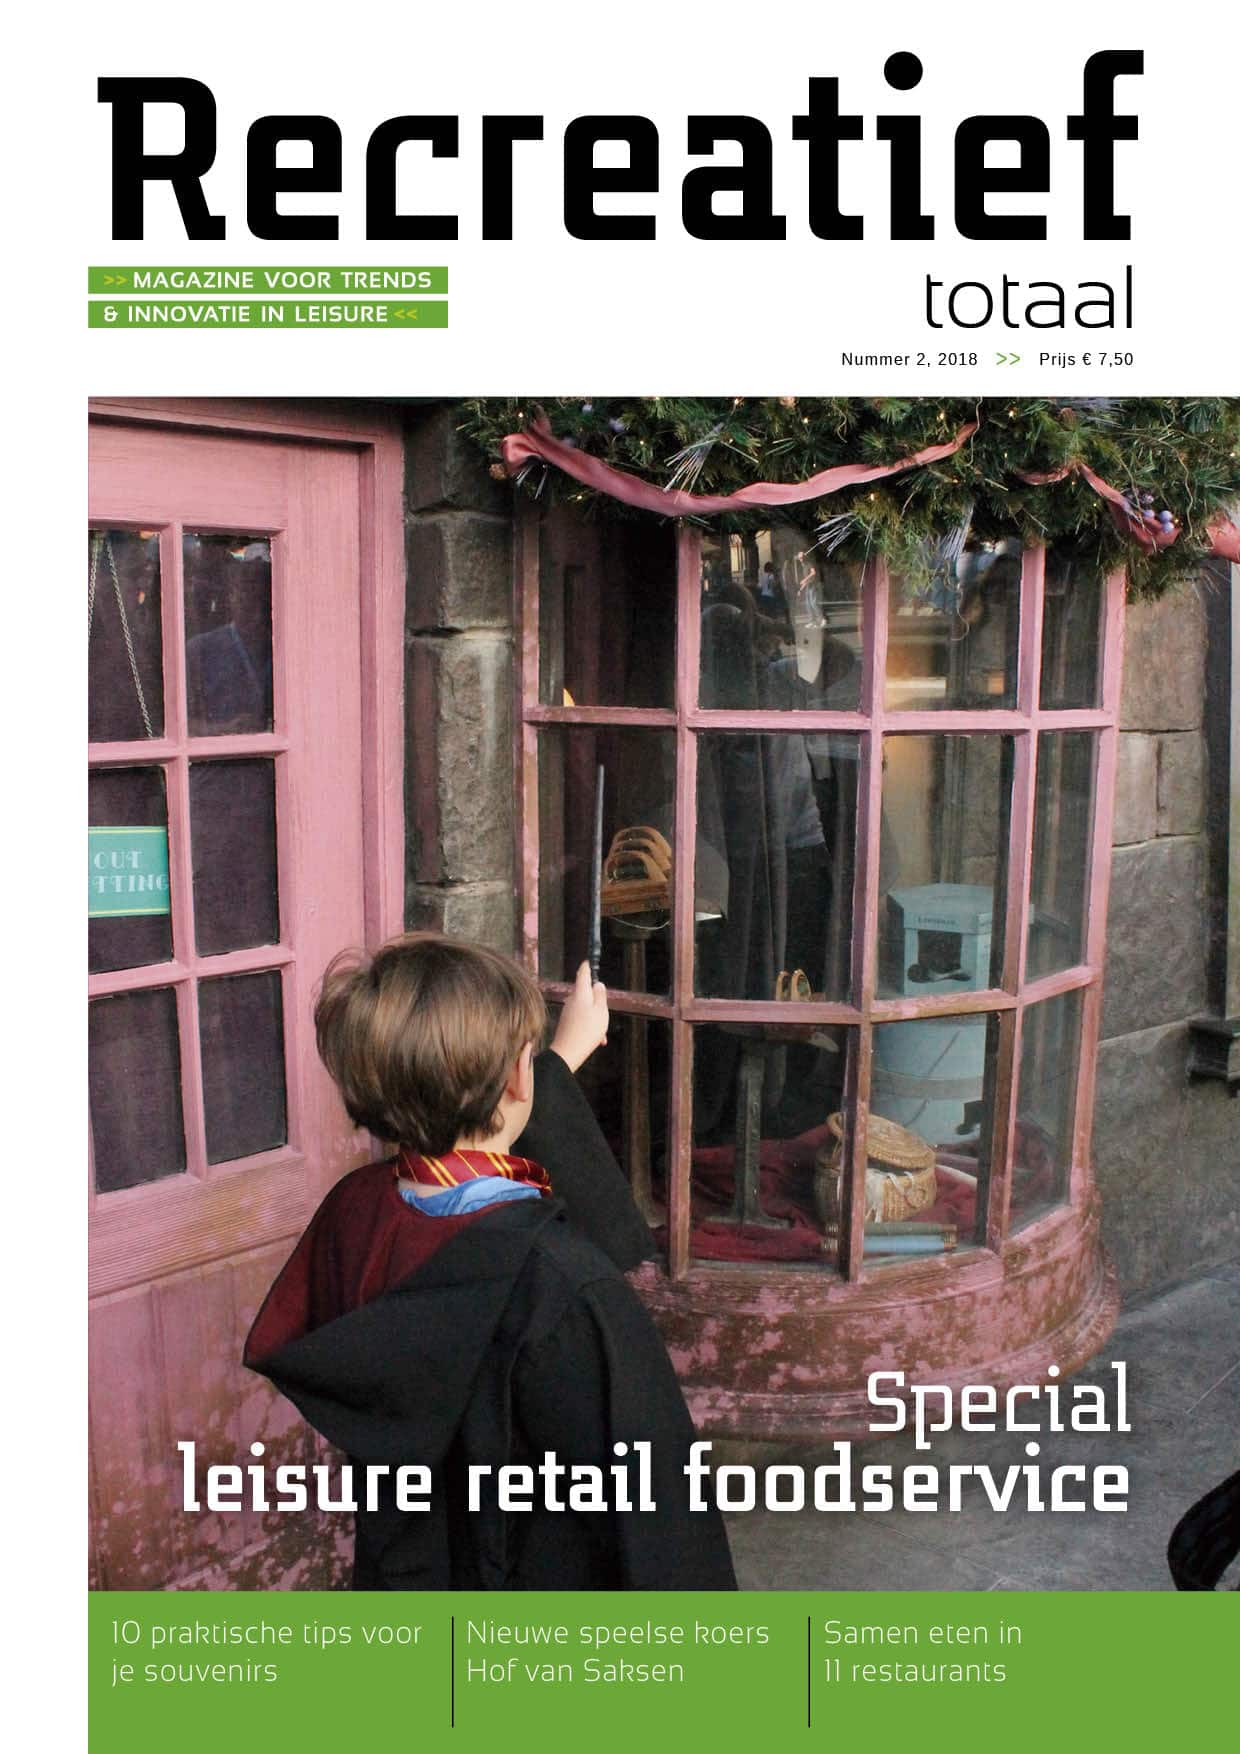 Food en retail recreatie sector - recreatief totaal